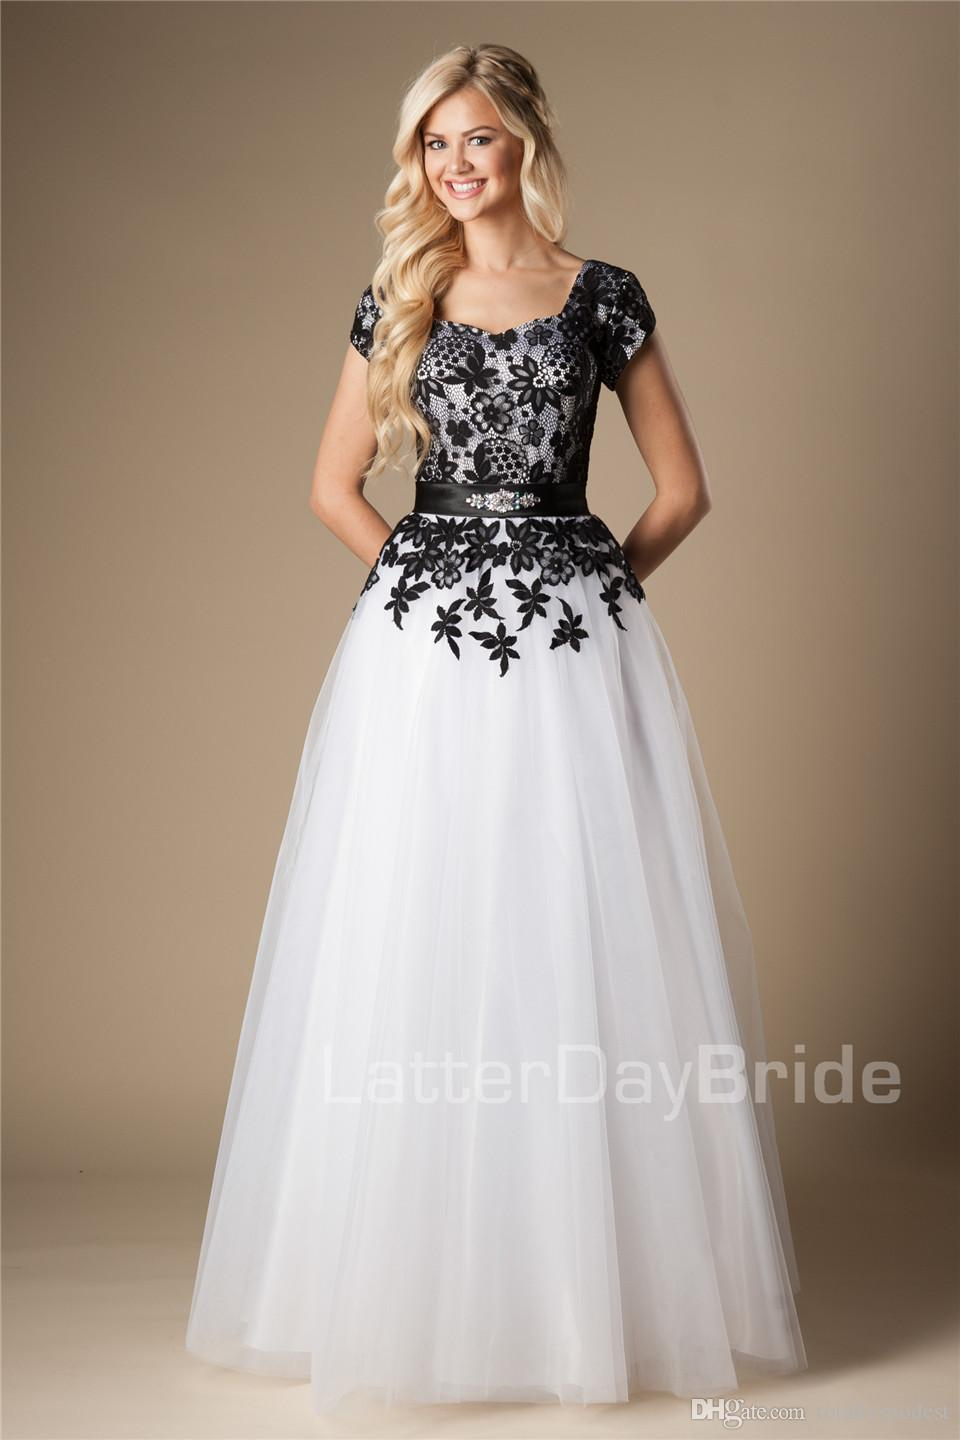 Simple Black and White Long Modest Prom Dresses With Cap Sleeves Floor Length Short Sleeves Seniors Prom Gowns 2016 New Cheap Evening Gowns